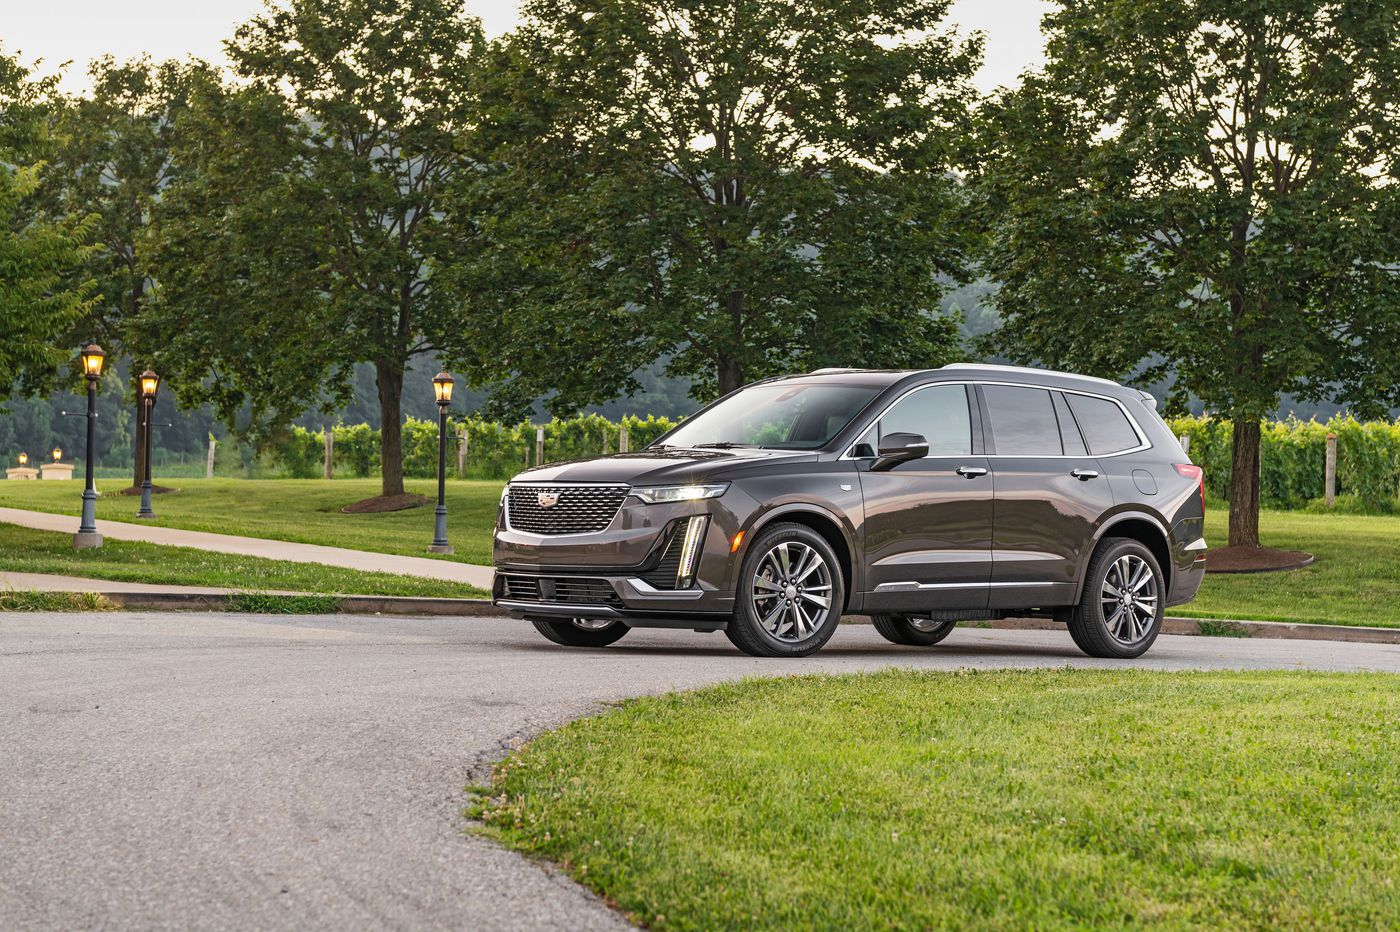 2020 Cadillac XT6 offers a smaller, cheaper three-row SUV, but not much more